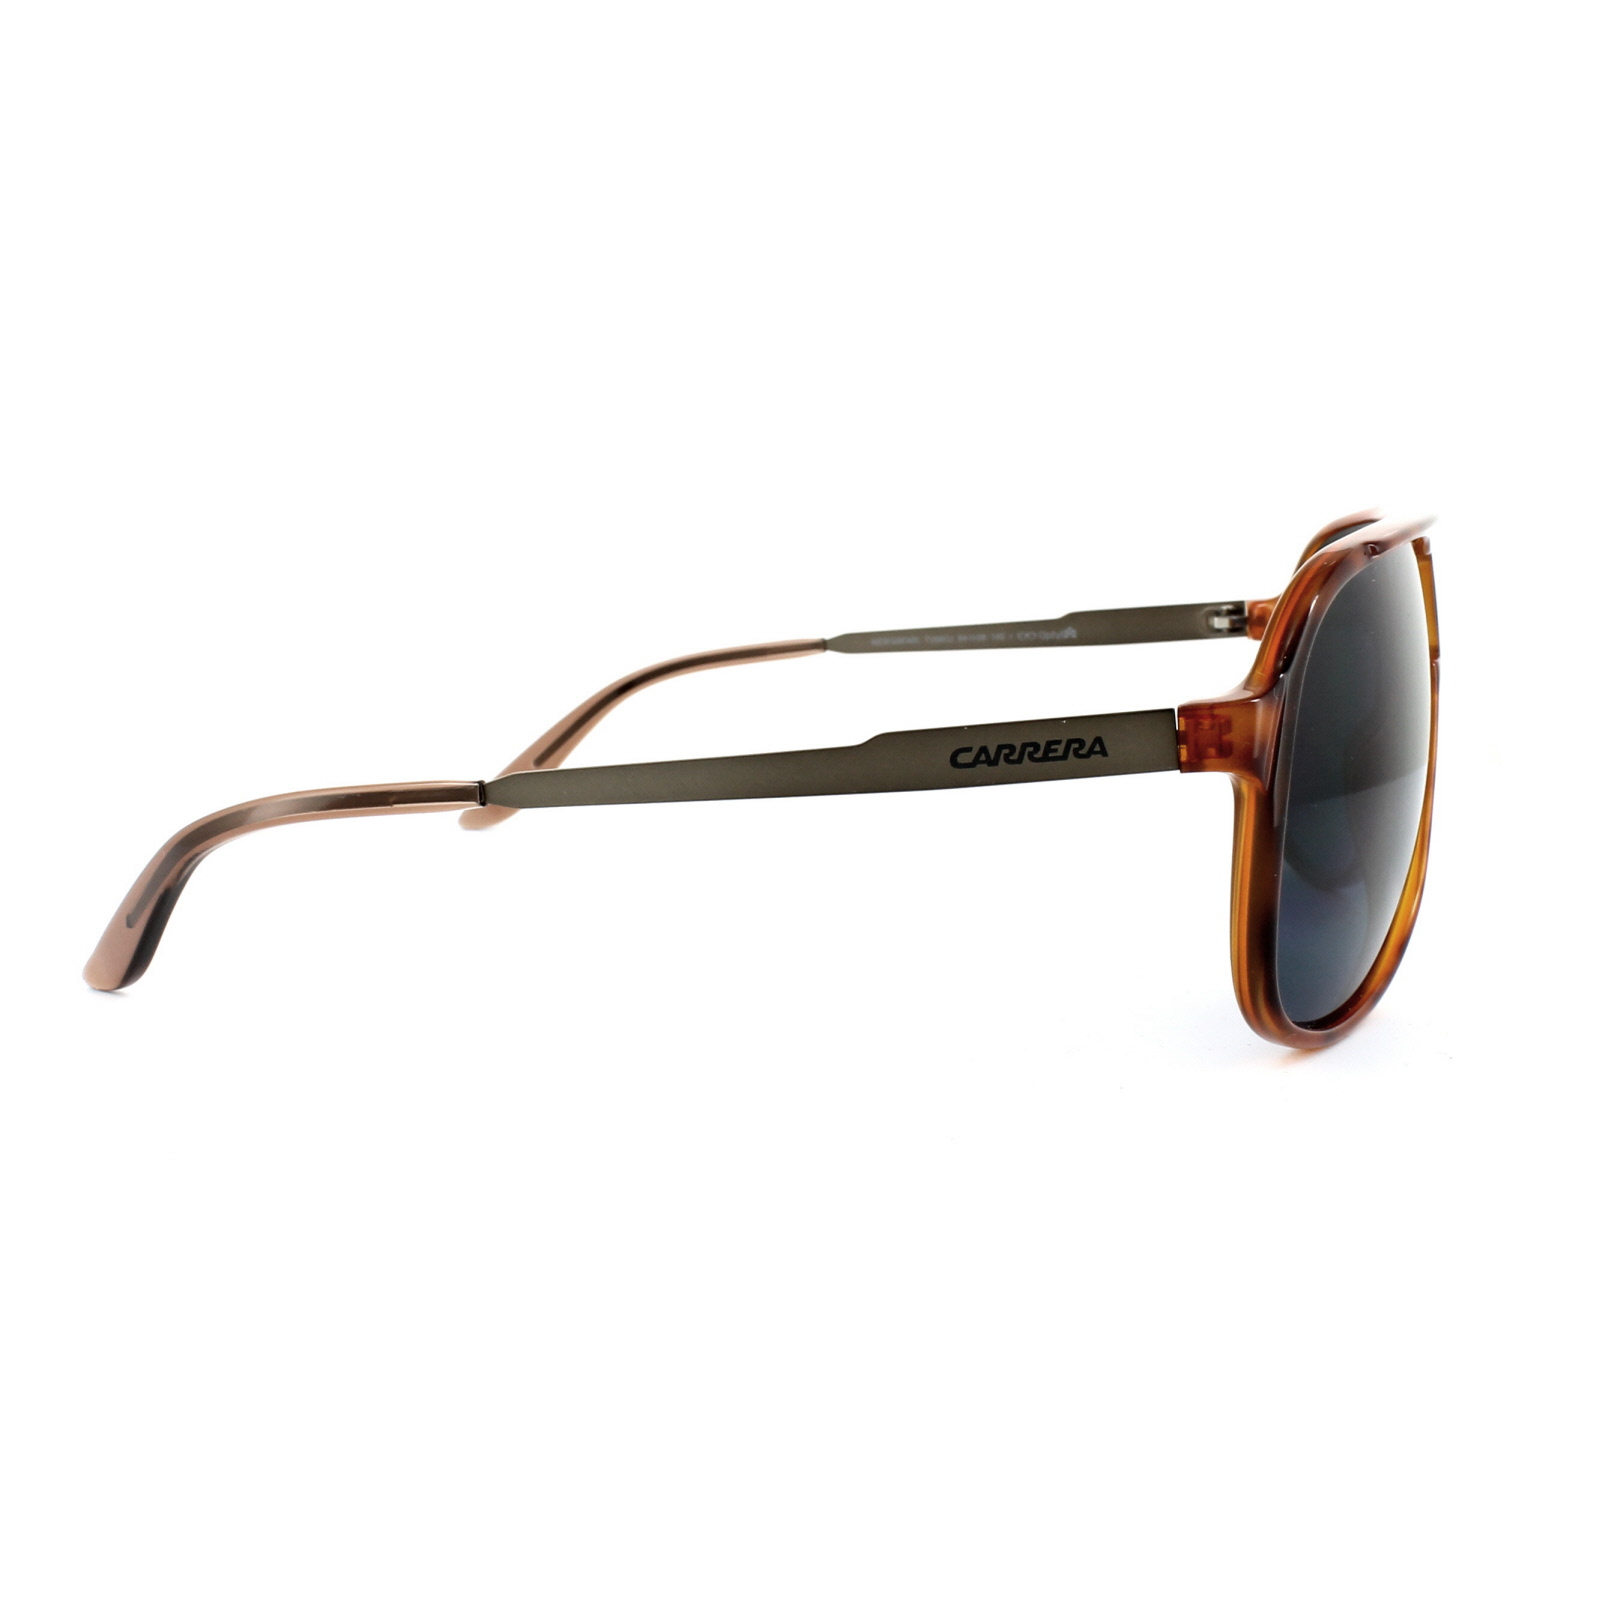 Brown Carrera Sunglasses  carrera sunglasses new safari tvm ku light havana brown blue